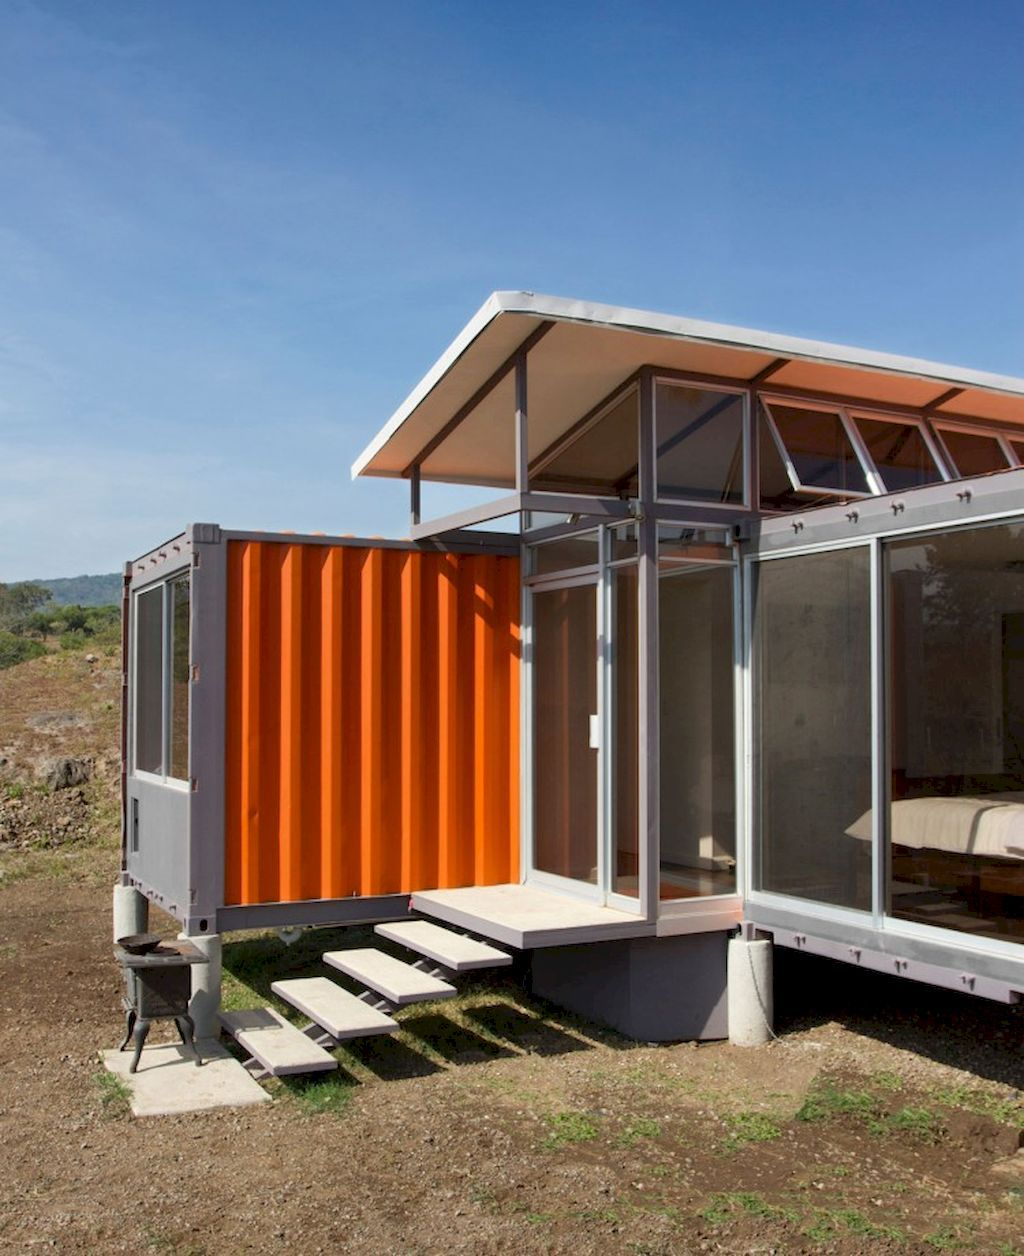 65 Gorgeous Shipping Container House Ideas on A Budget